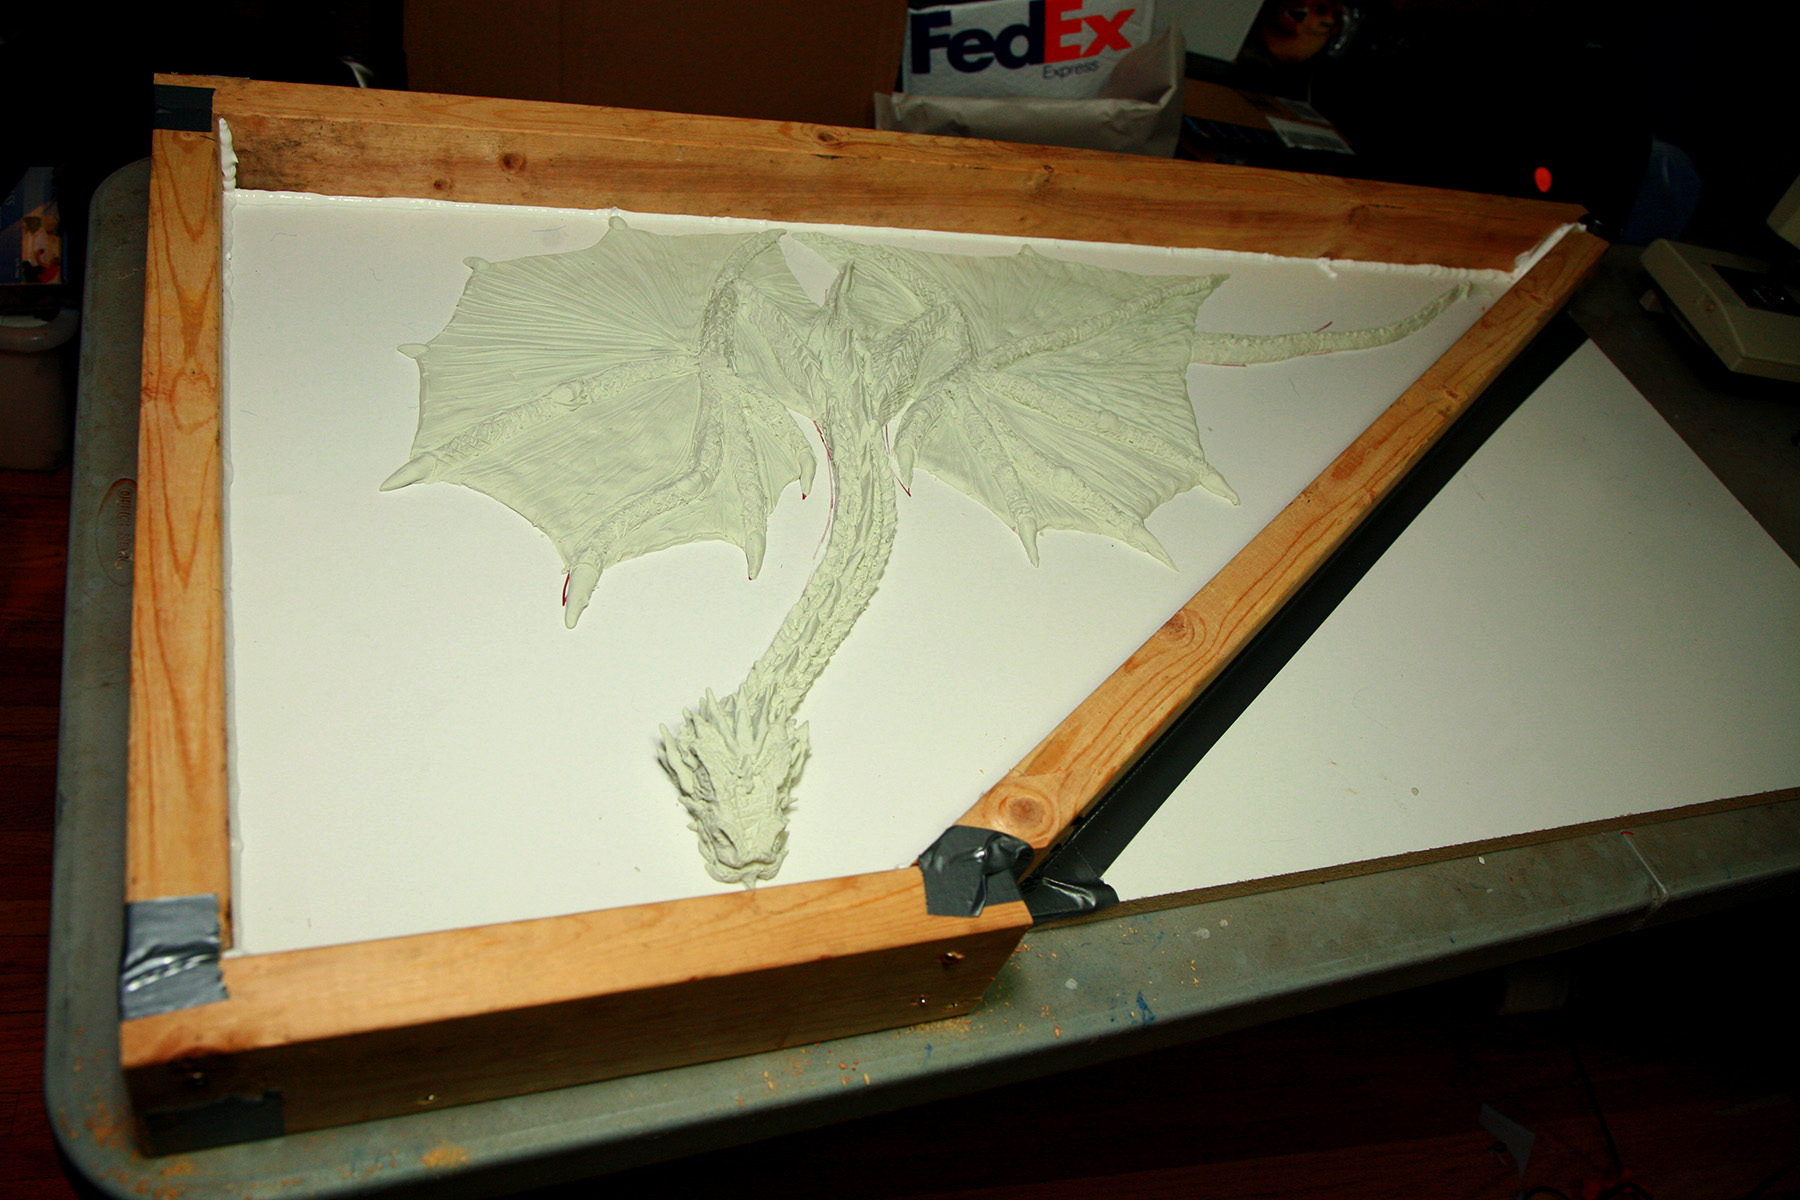 The clay dragon on white board has had a wooden wall built around it.